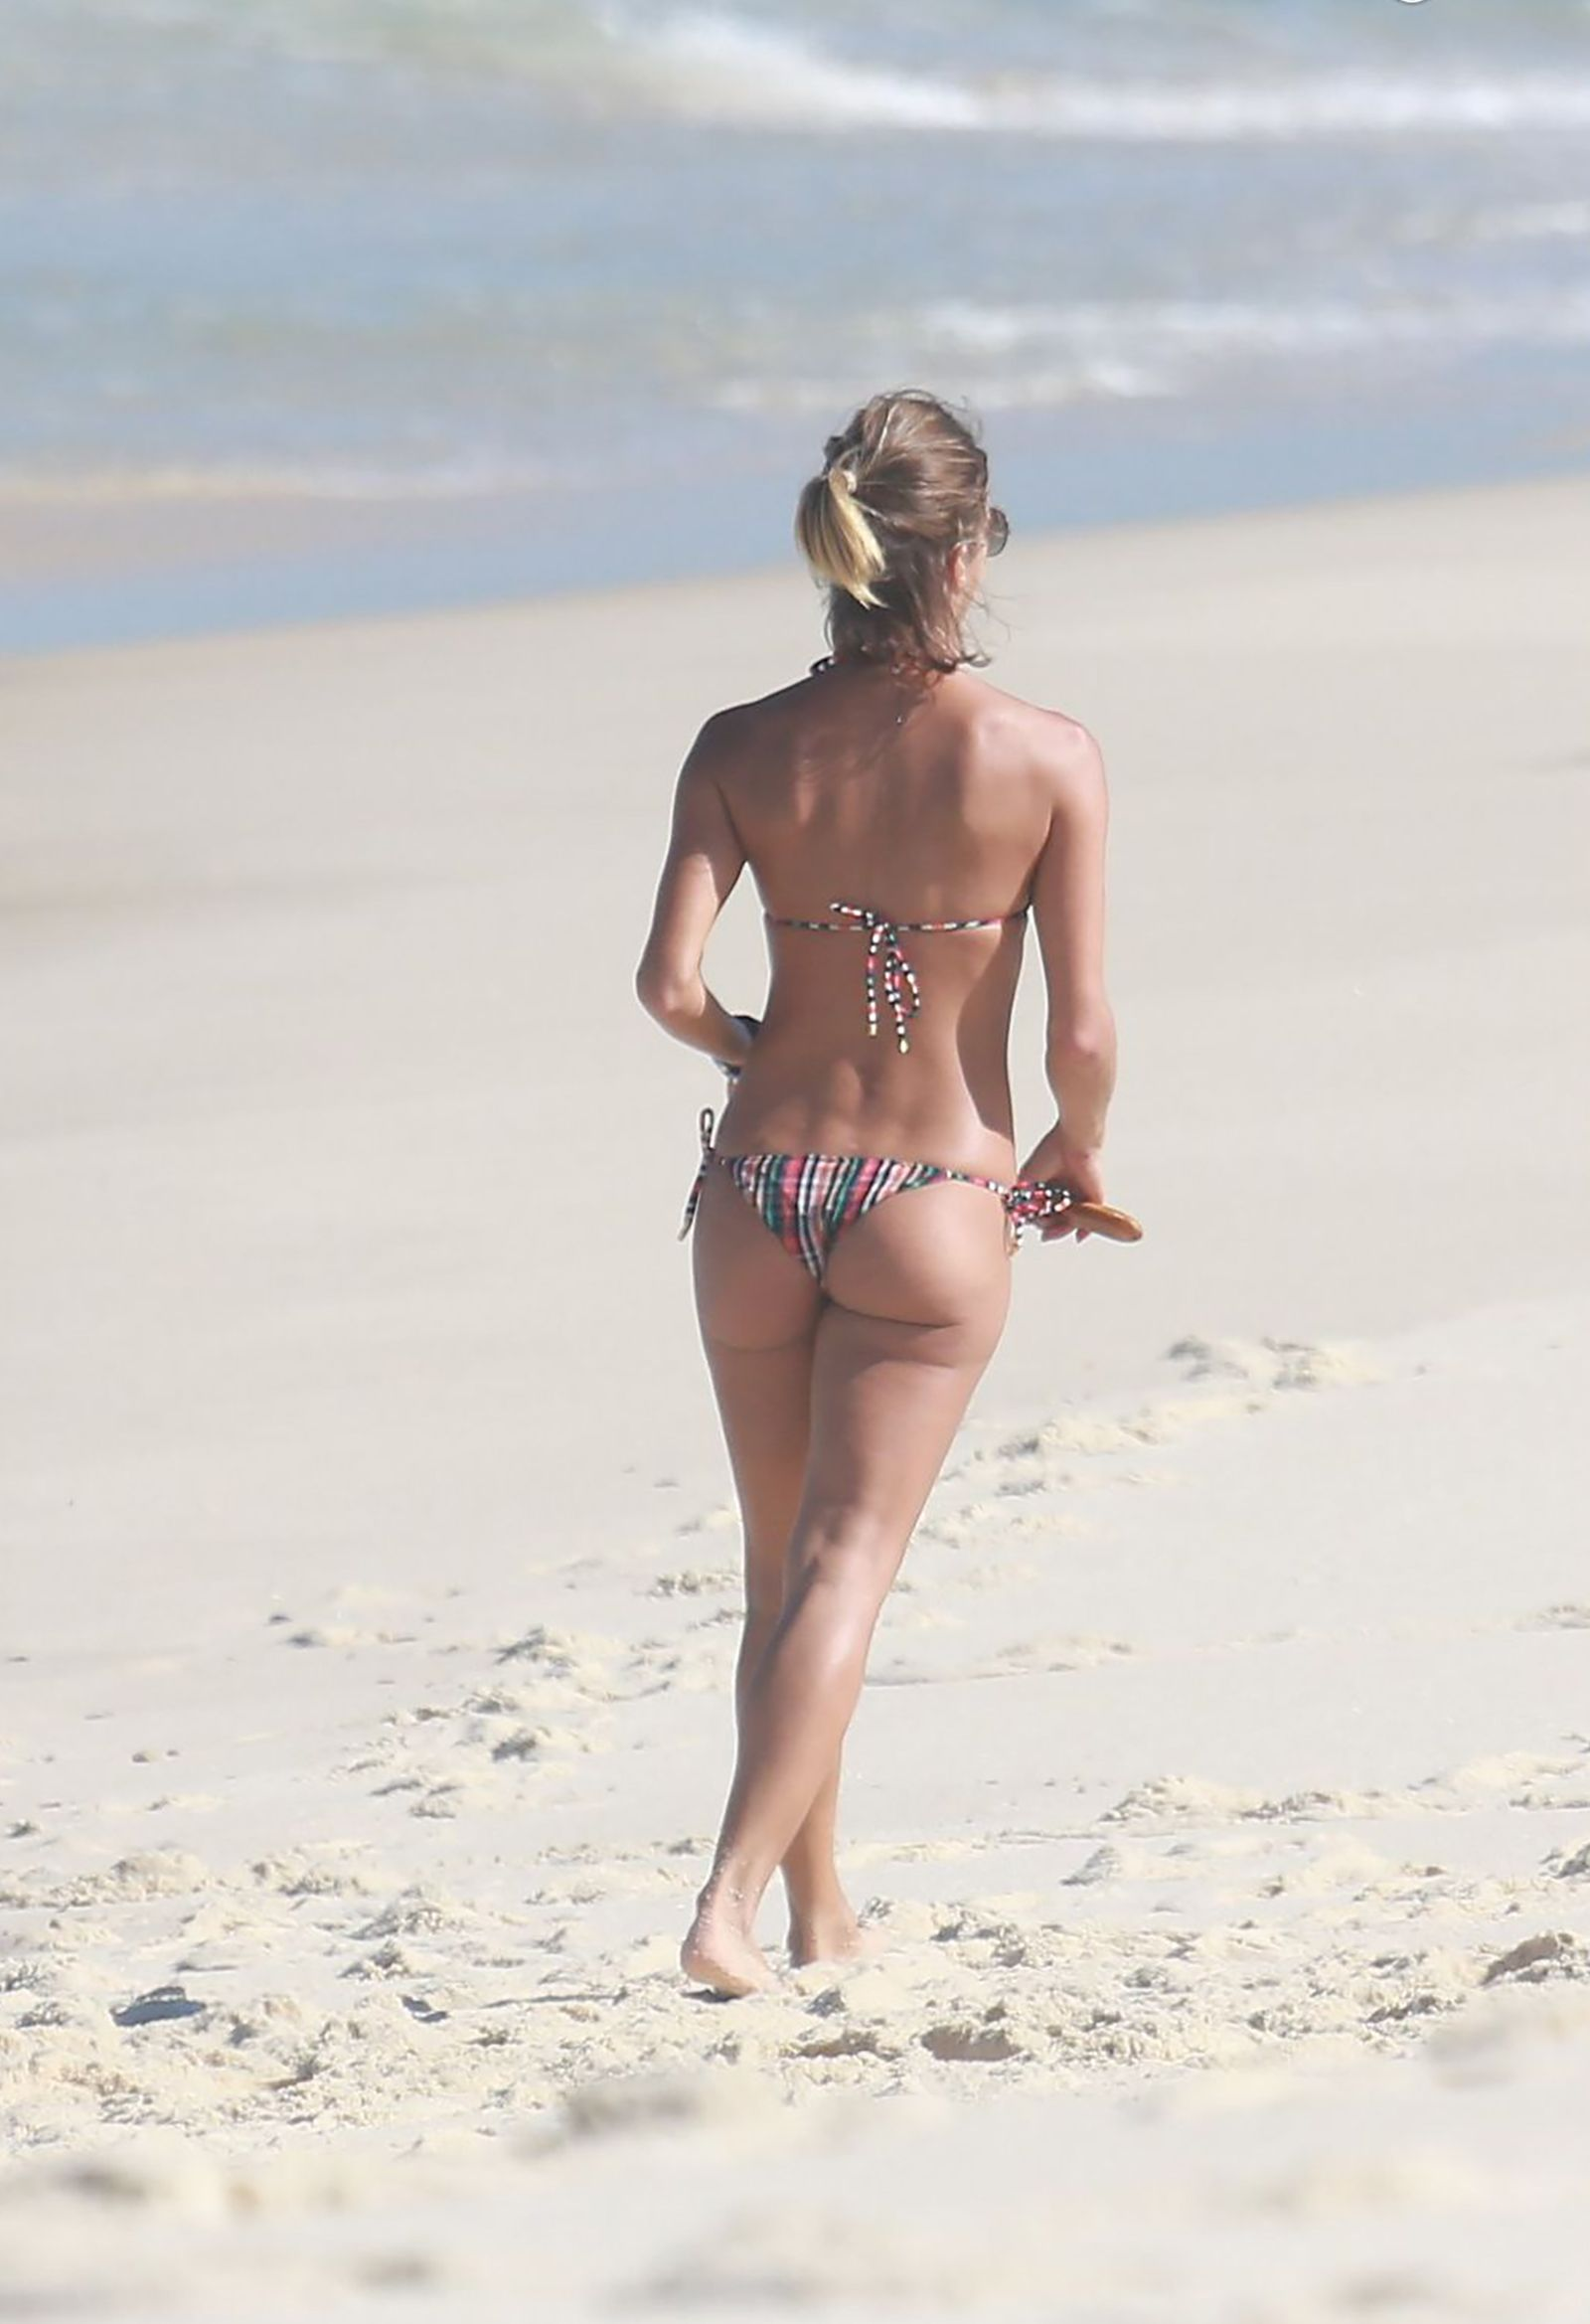 Fernanda de Freitas Leaked Bikini Pictures, Hot Girl